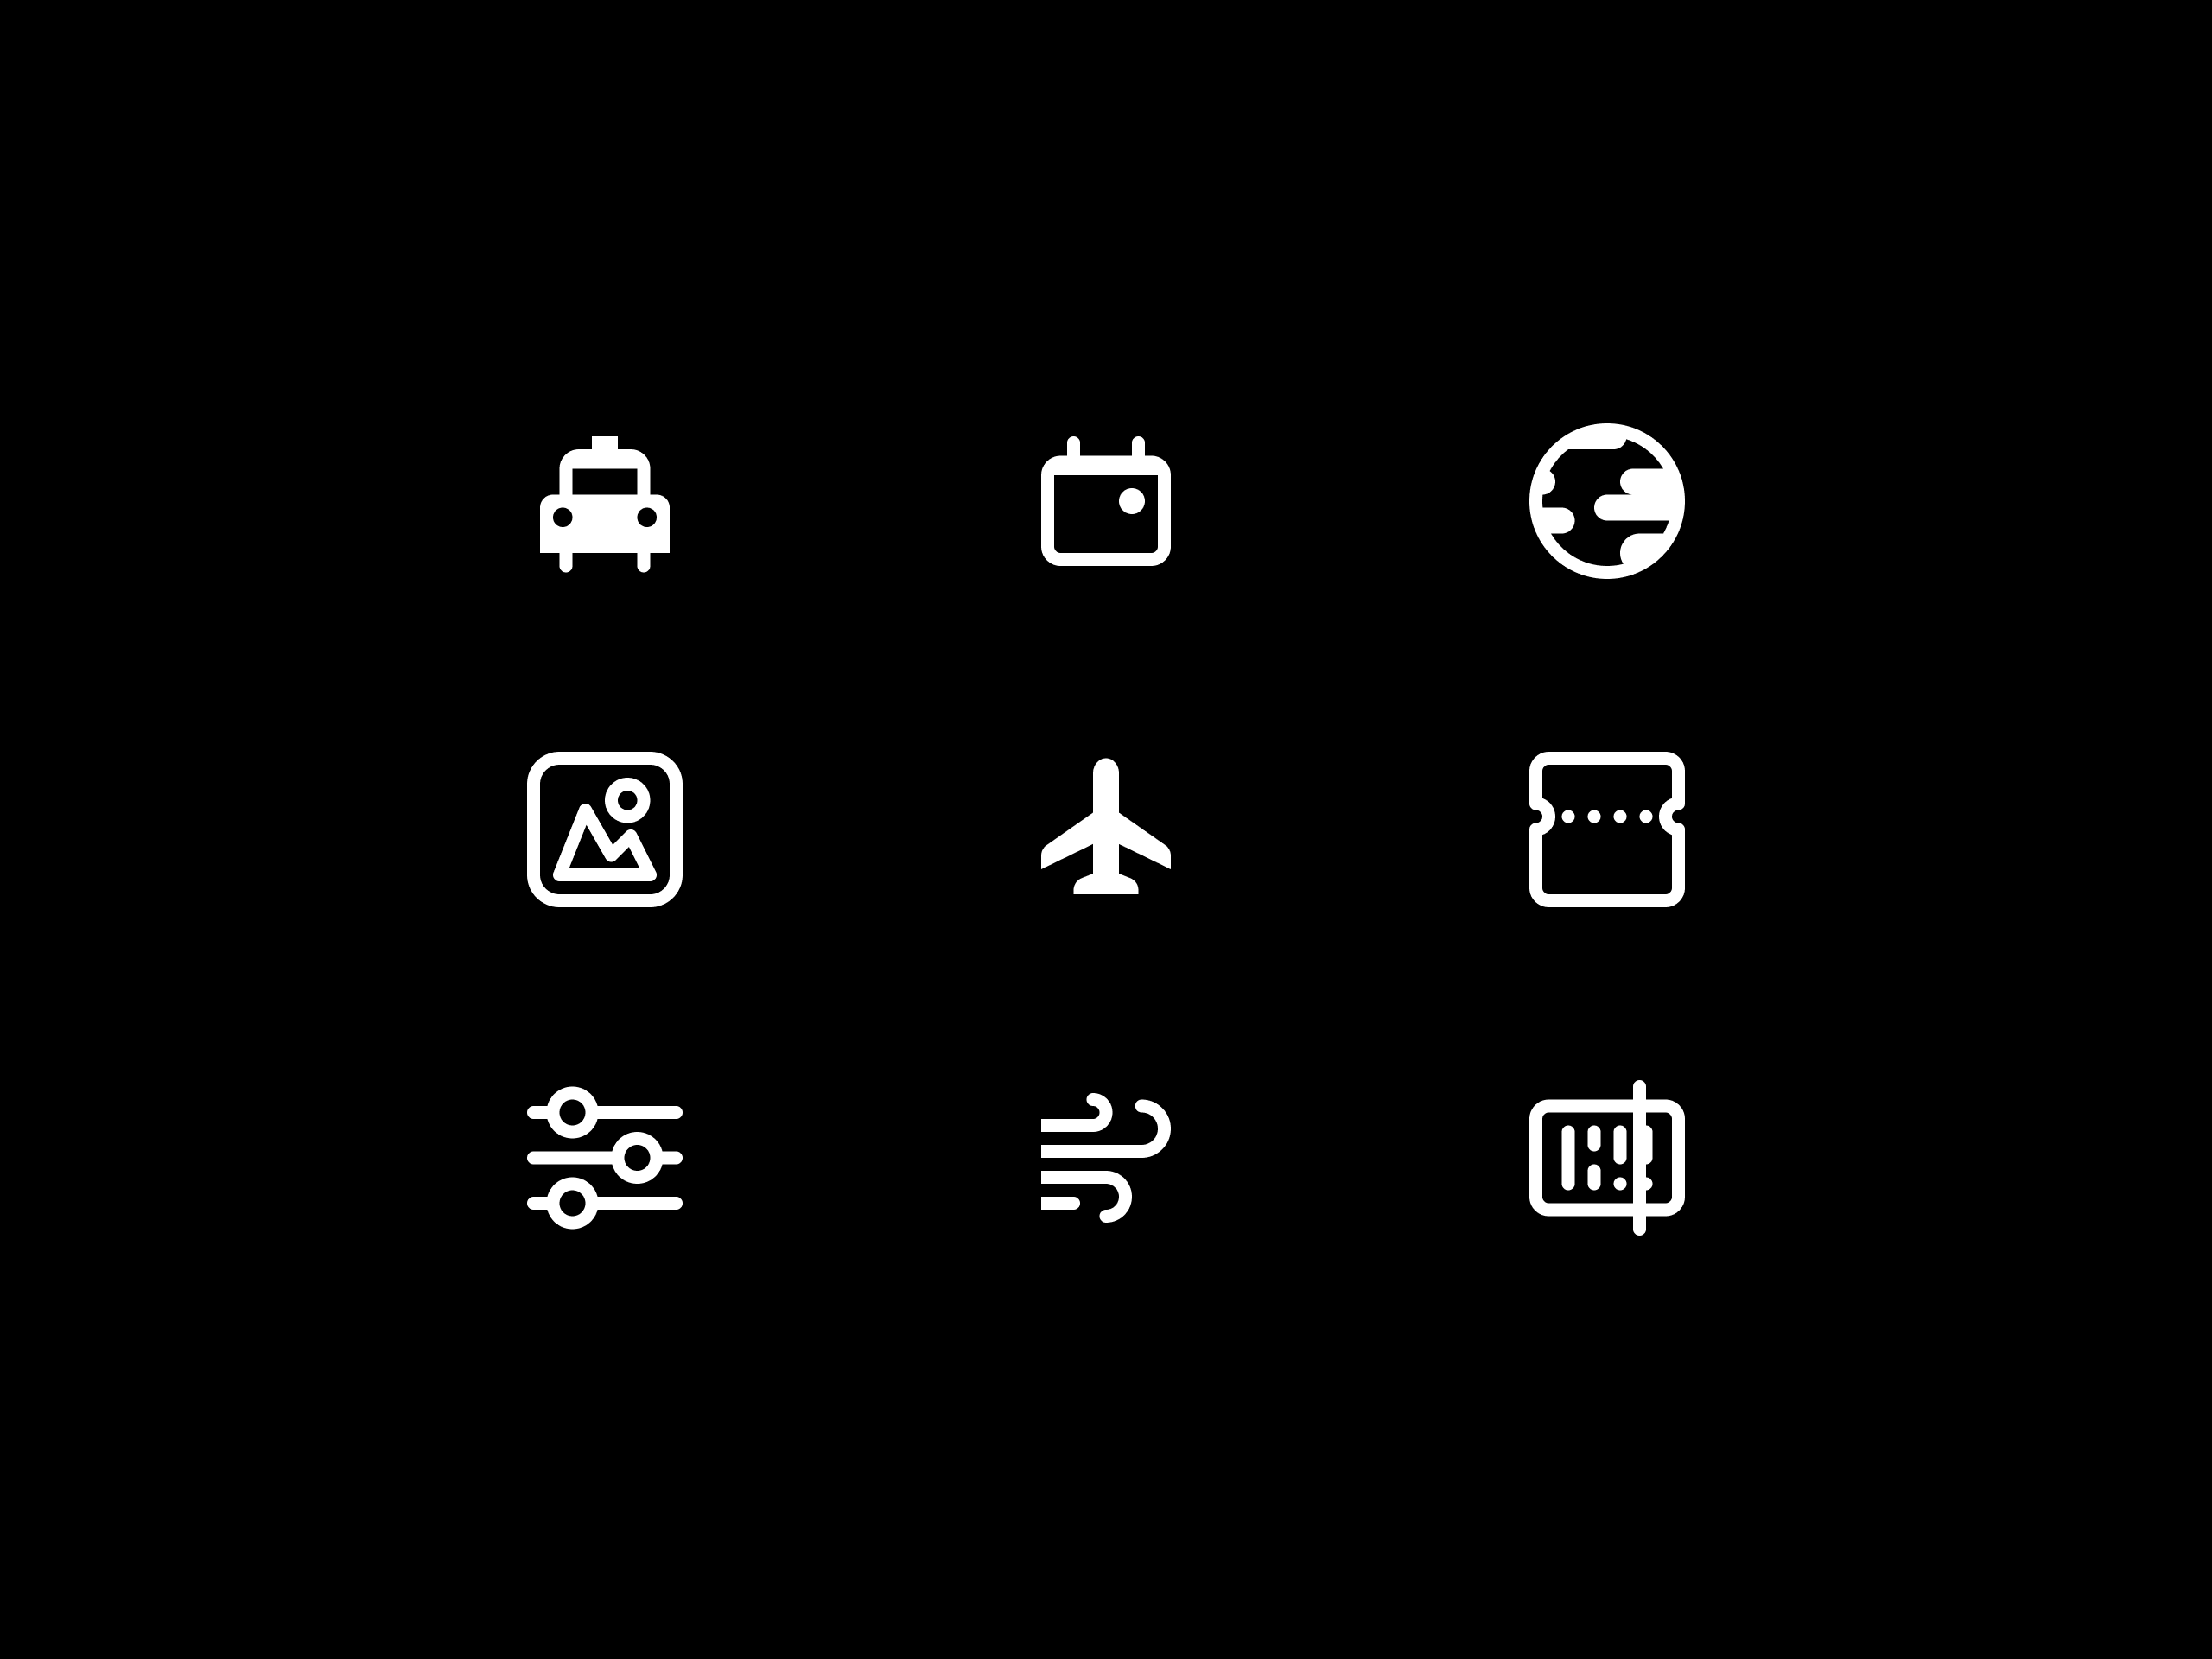 Riyadh Airports app collection of icons.